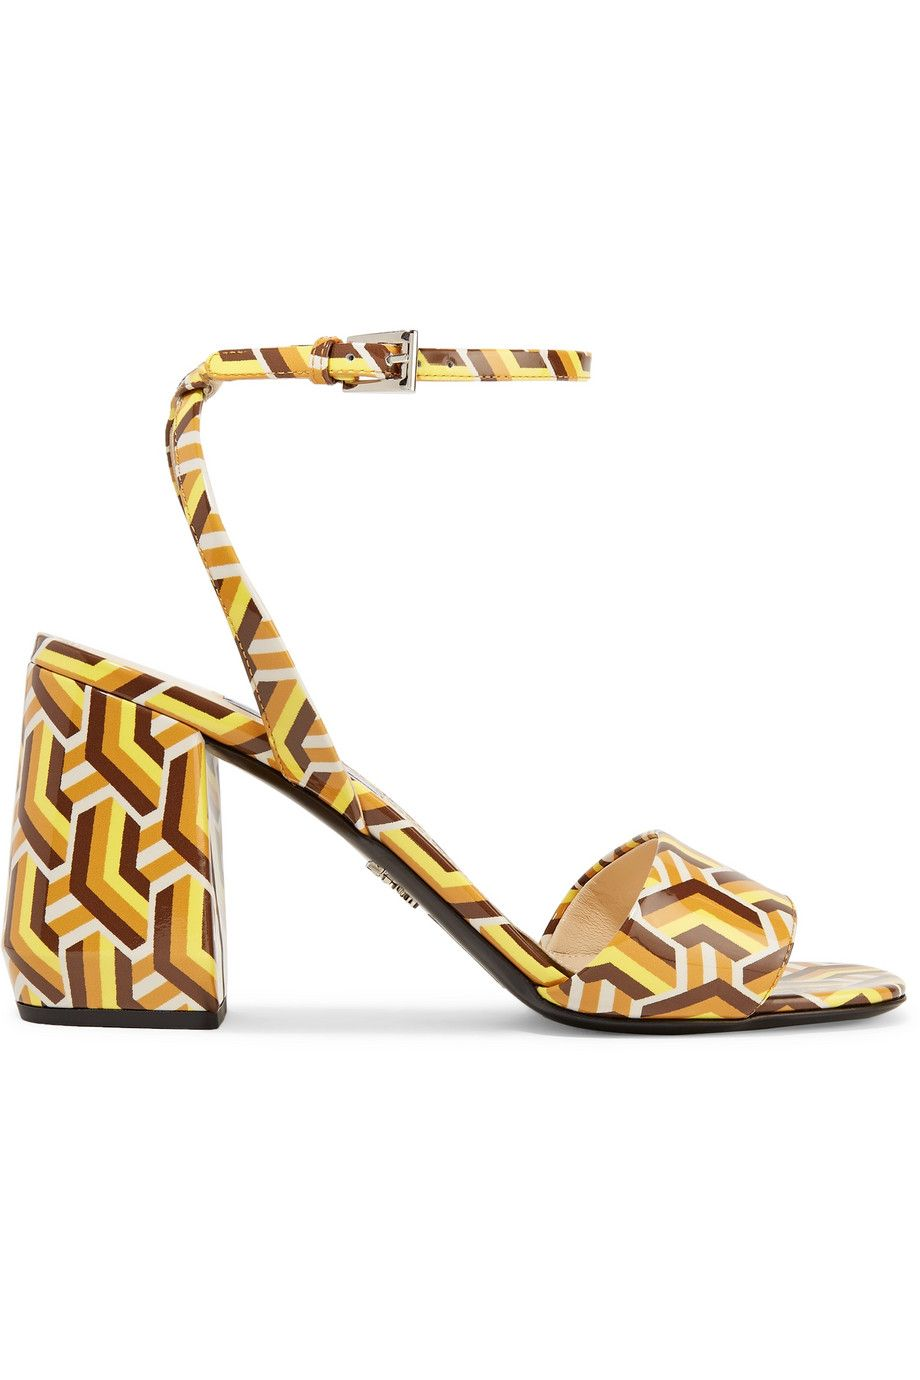 Printed Patent-Leather Sandals Prada net-a-porter.com $750.00 SHOP NOW Delicate ankle straps balance the sturdiness of this retro block heel.